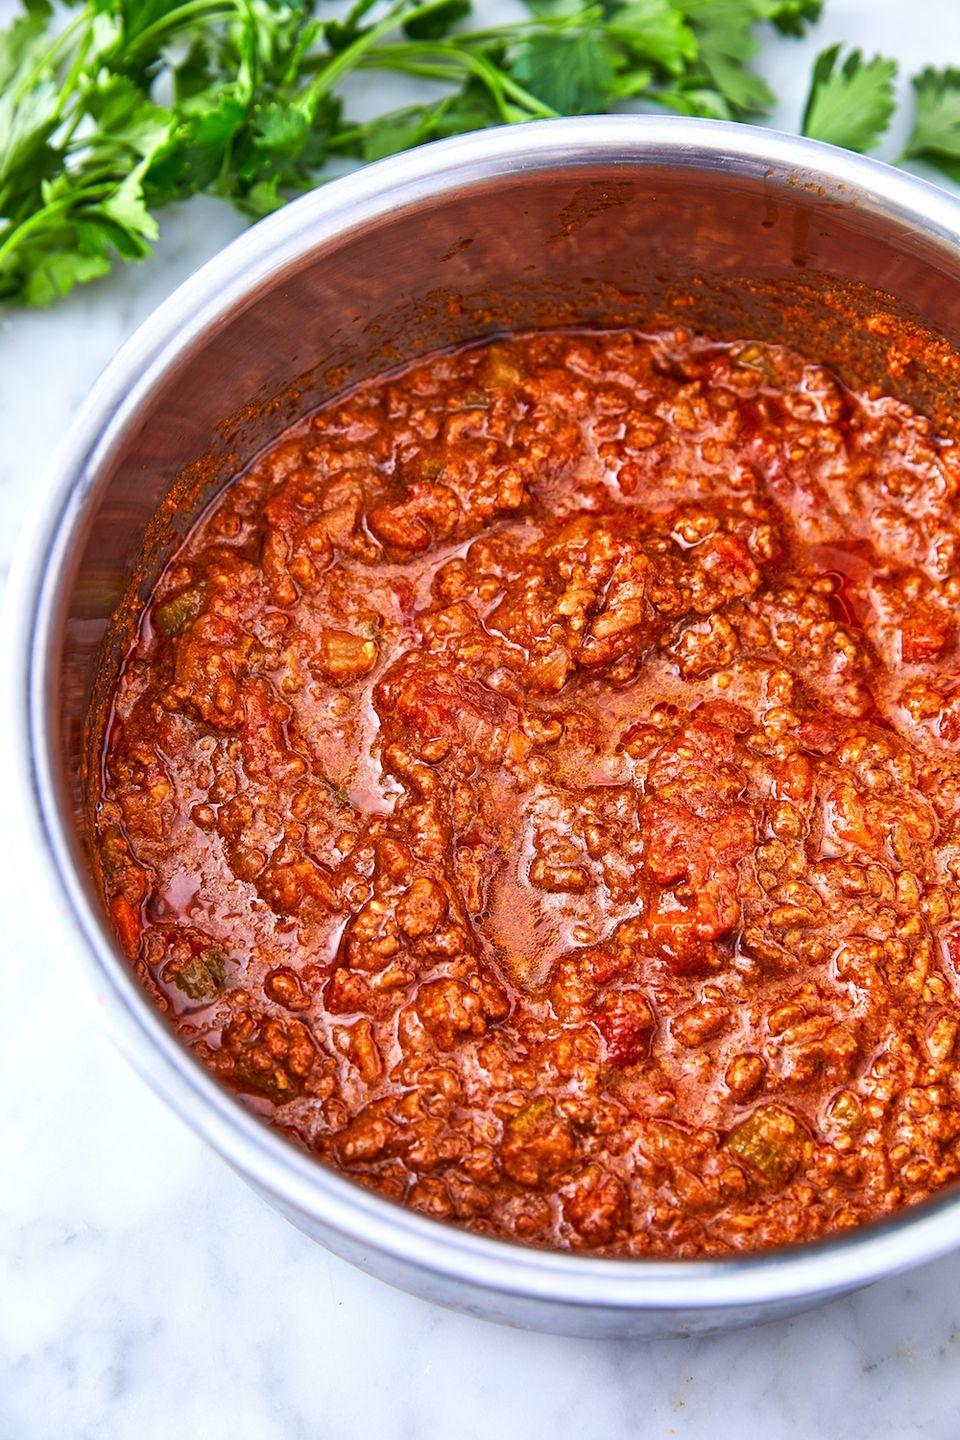 "<p>The ultimate way to transform a package of ground beef into something show-stopping. </p><p>Get the recipe from <a href=""https://www.delish.com/cooking/recipe-ideas/recipes/a7600/bolognese-sauce-recipe/"" rel=""nofollow noopener"" target=""_blank"" data-ylk=""slk:Delish"" class=""link rapid-noclick-resp"">Delish</a>. </p>"